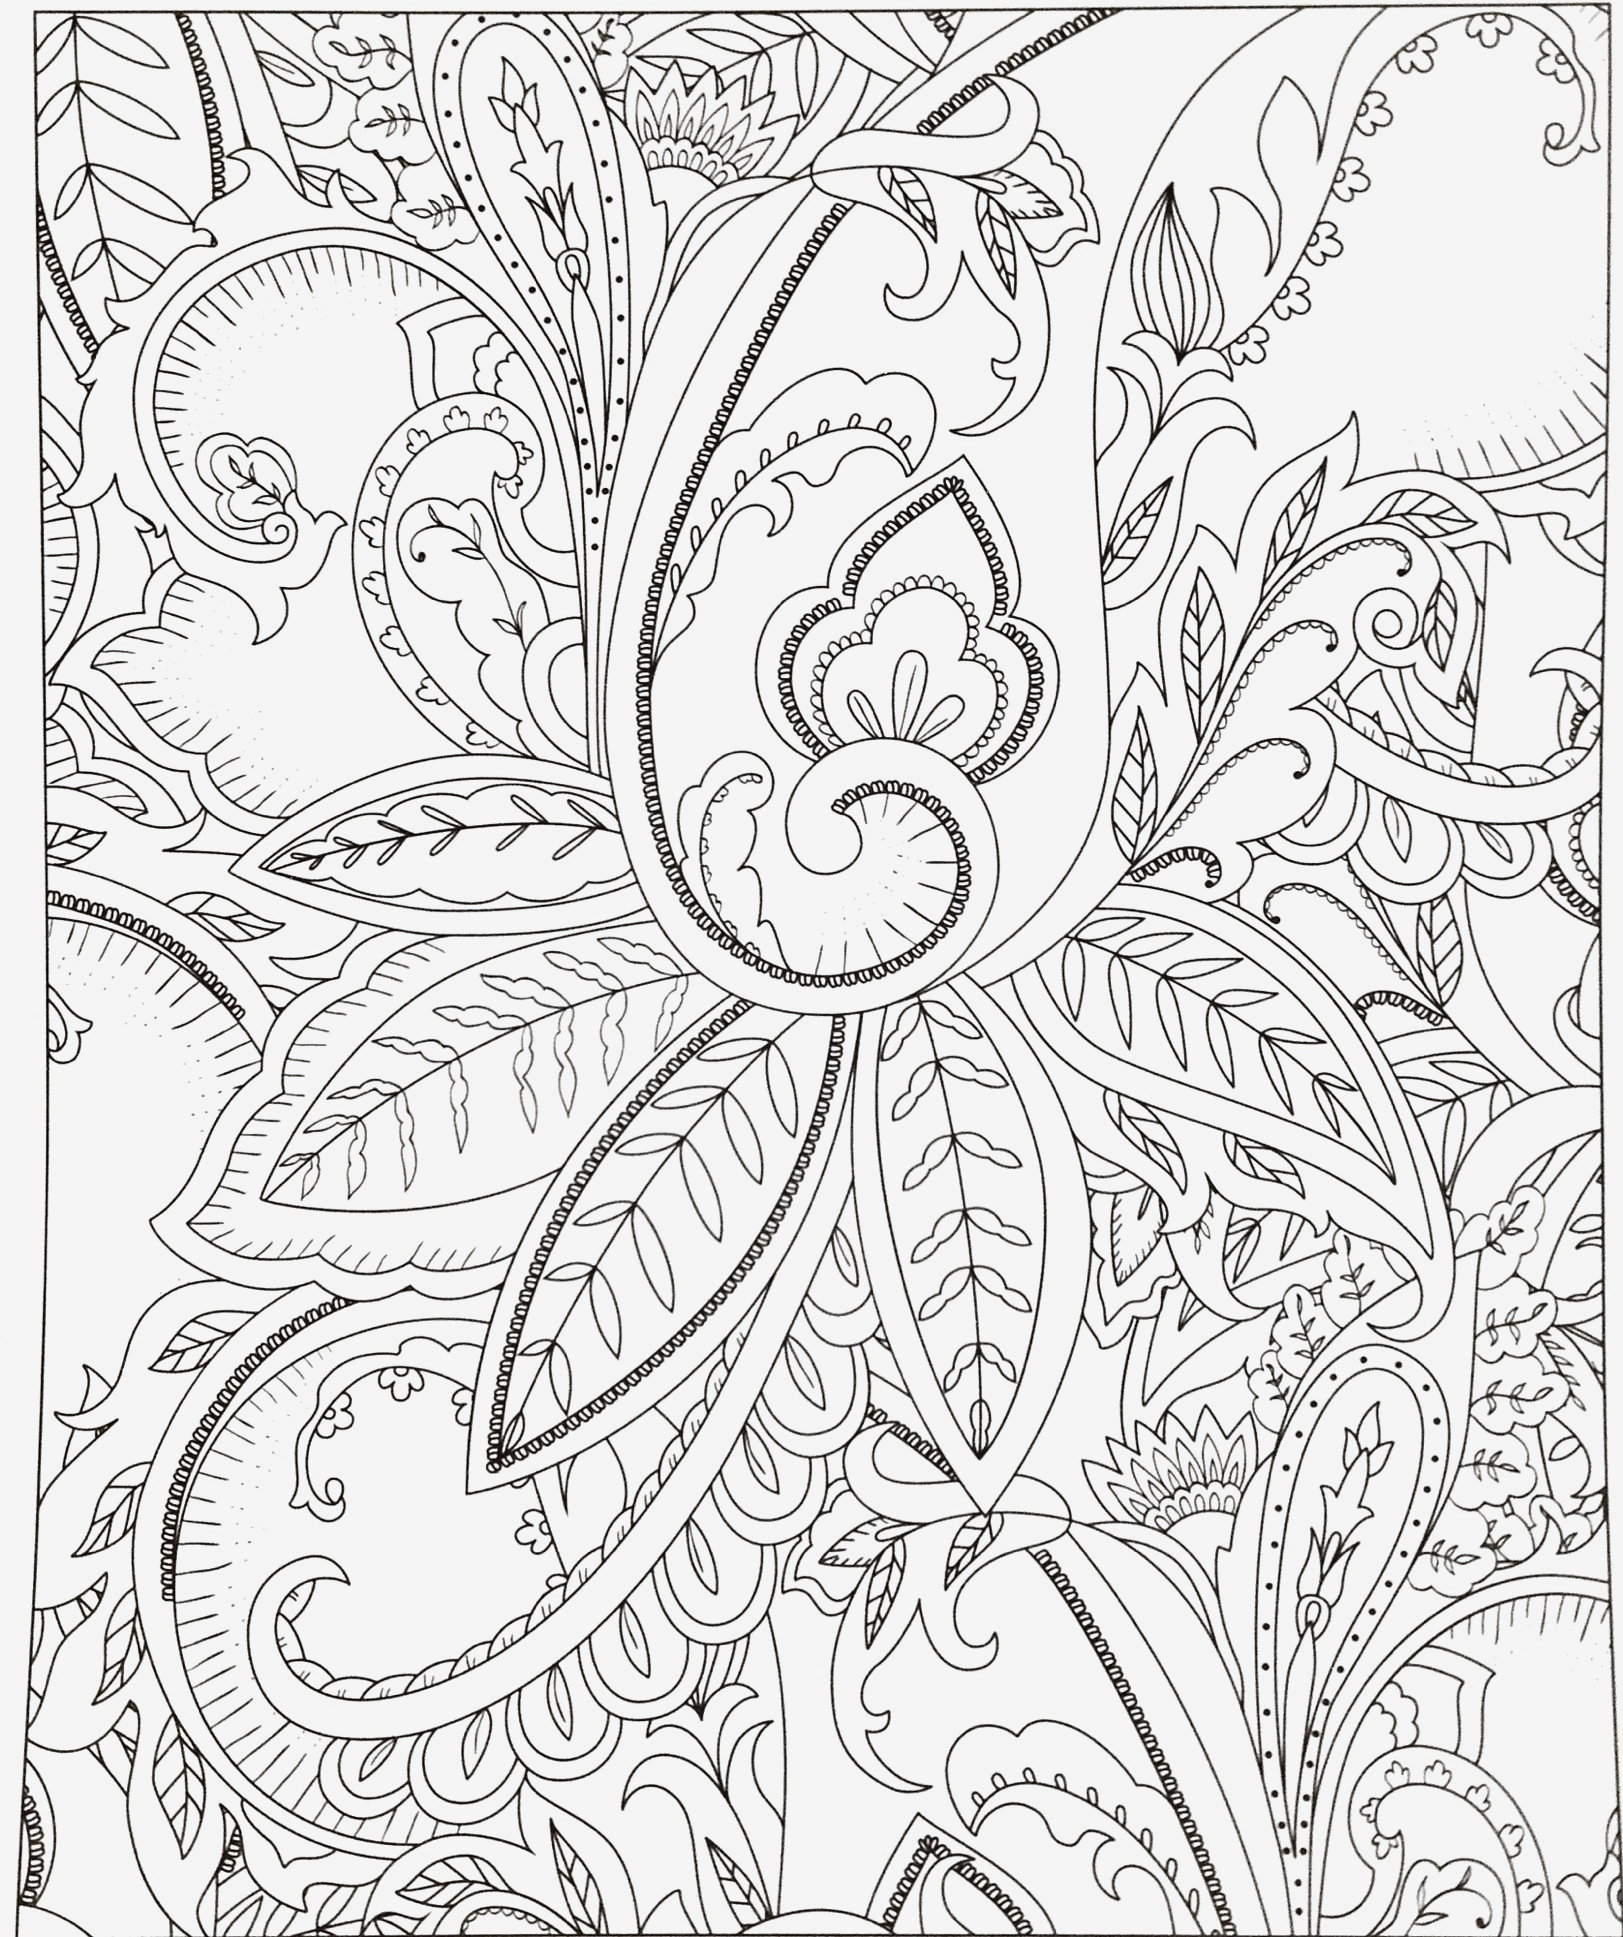 23 Coloring Book Pages to Print Collection - Coloring Sheets